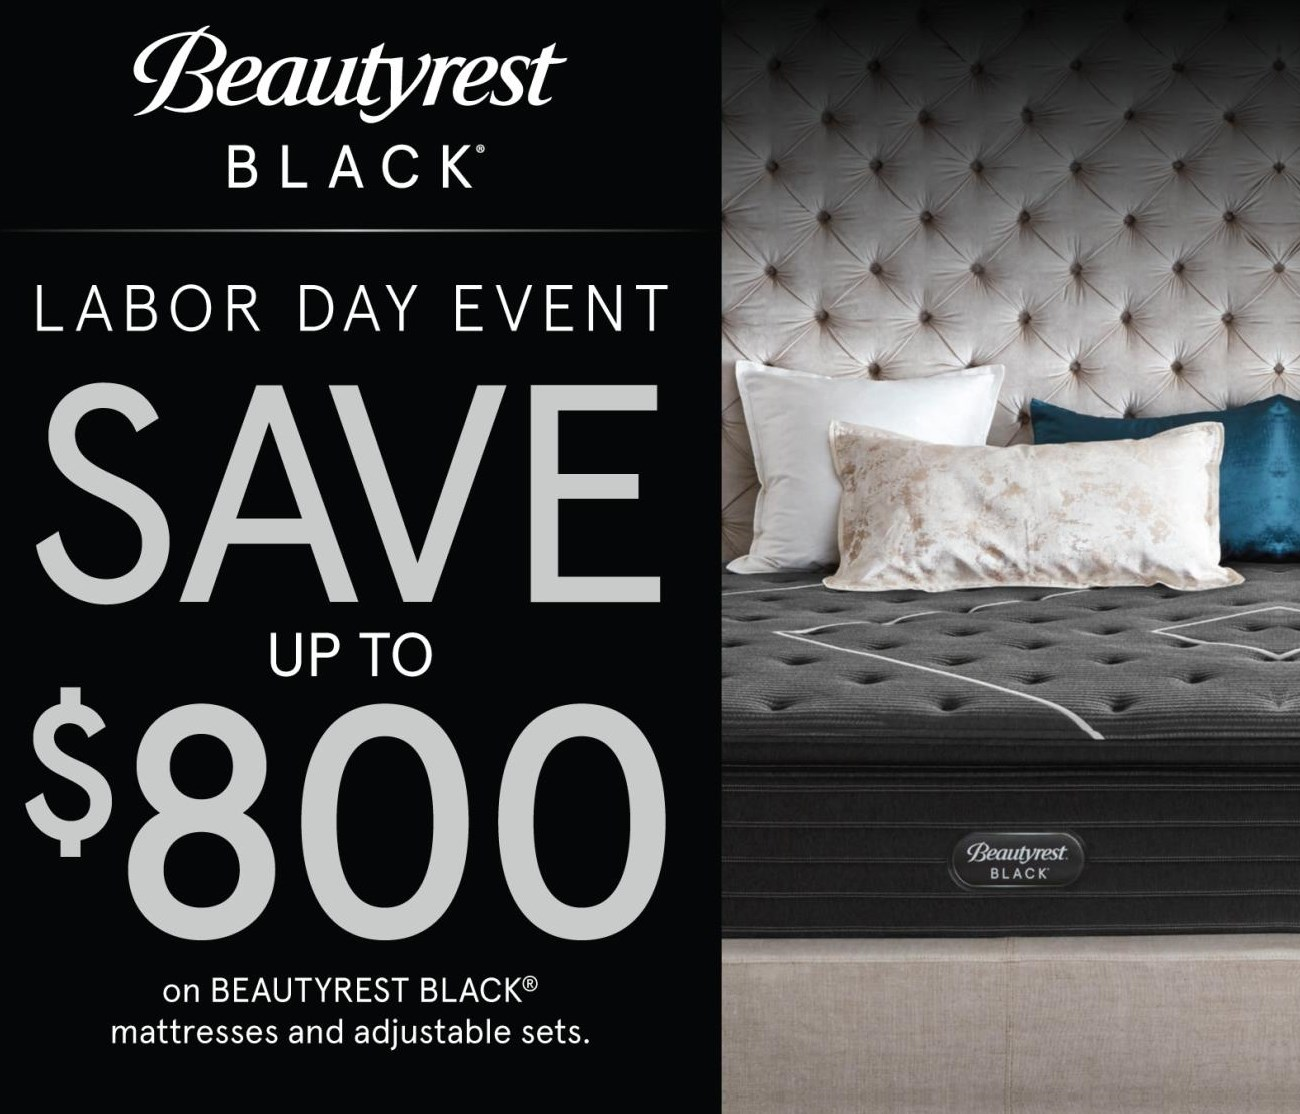 Beautyrest Black save up to $800!!!